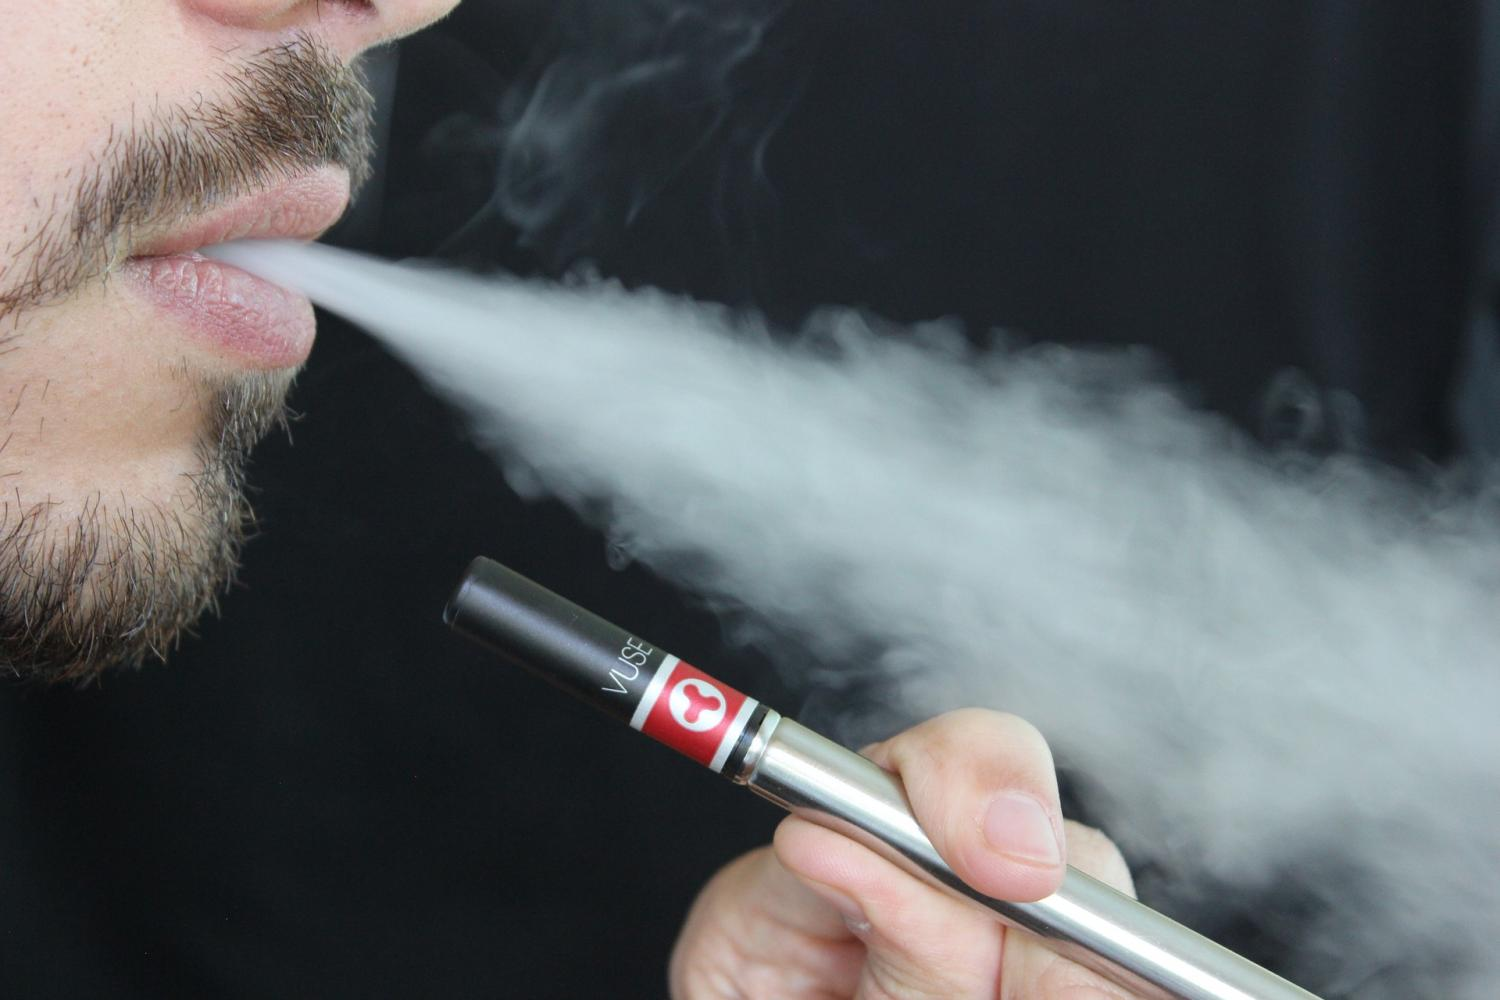 E-cigarettes research shows clear benefits of switching from tobacco